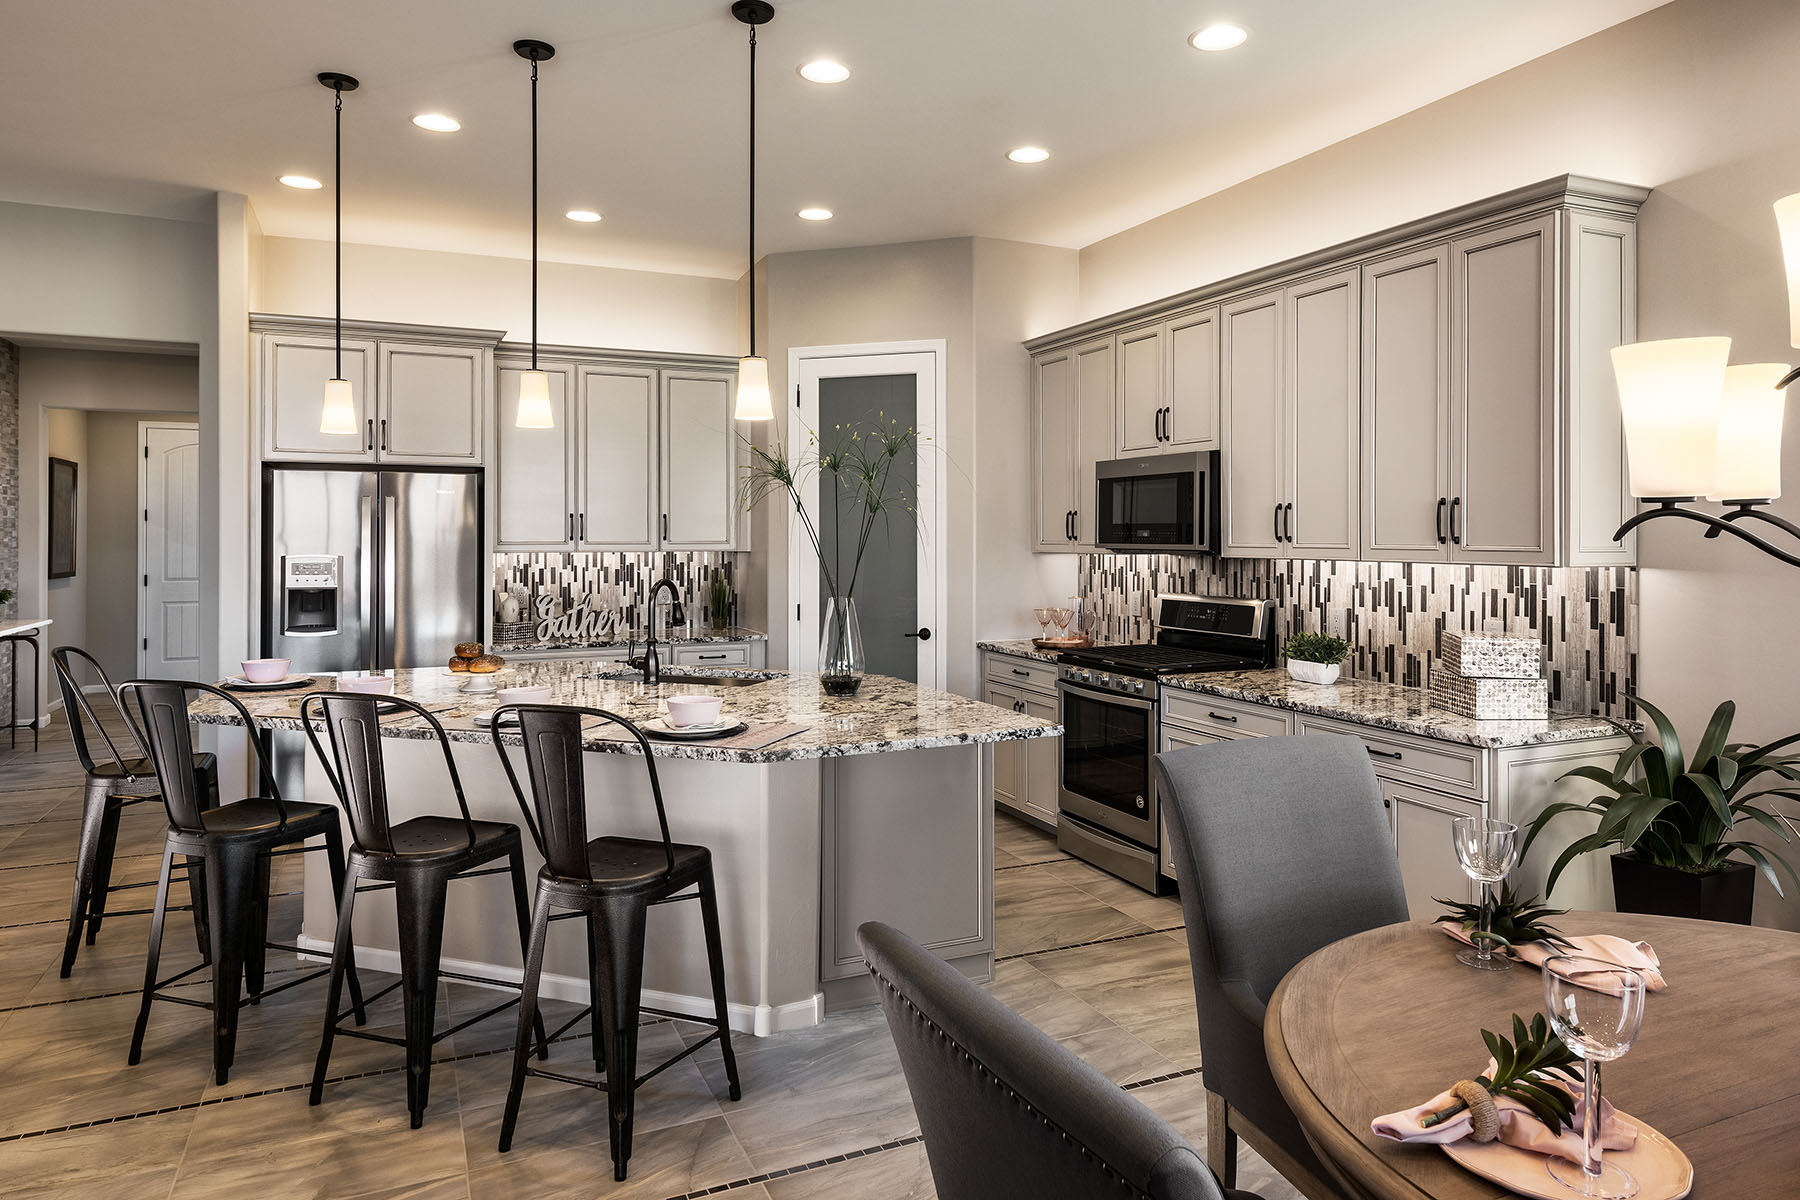 Aspect Plan Kitchen at Viewpointe at Vistoso Trails in Oro Valley Arizona by Mattamy Homes